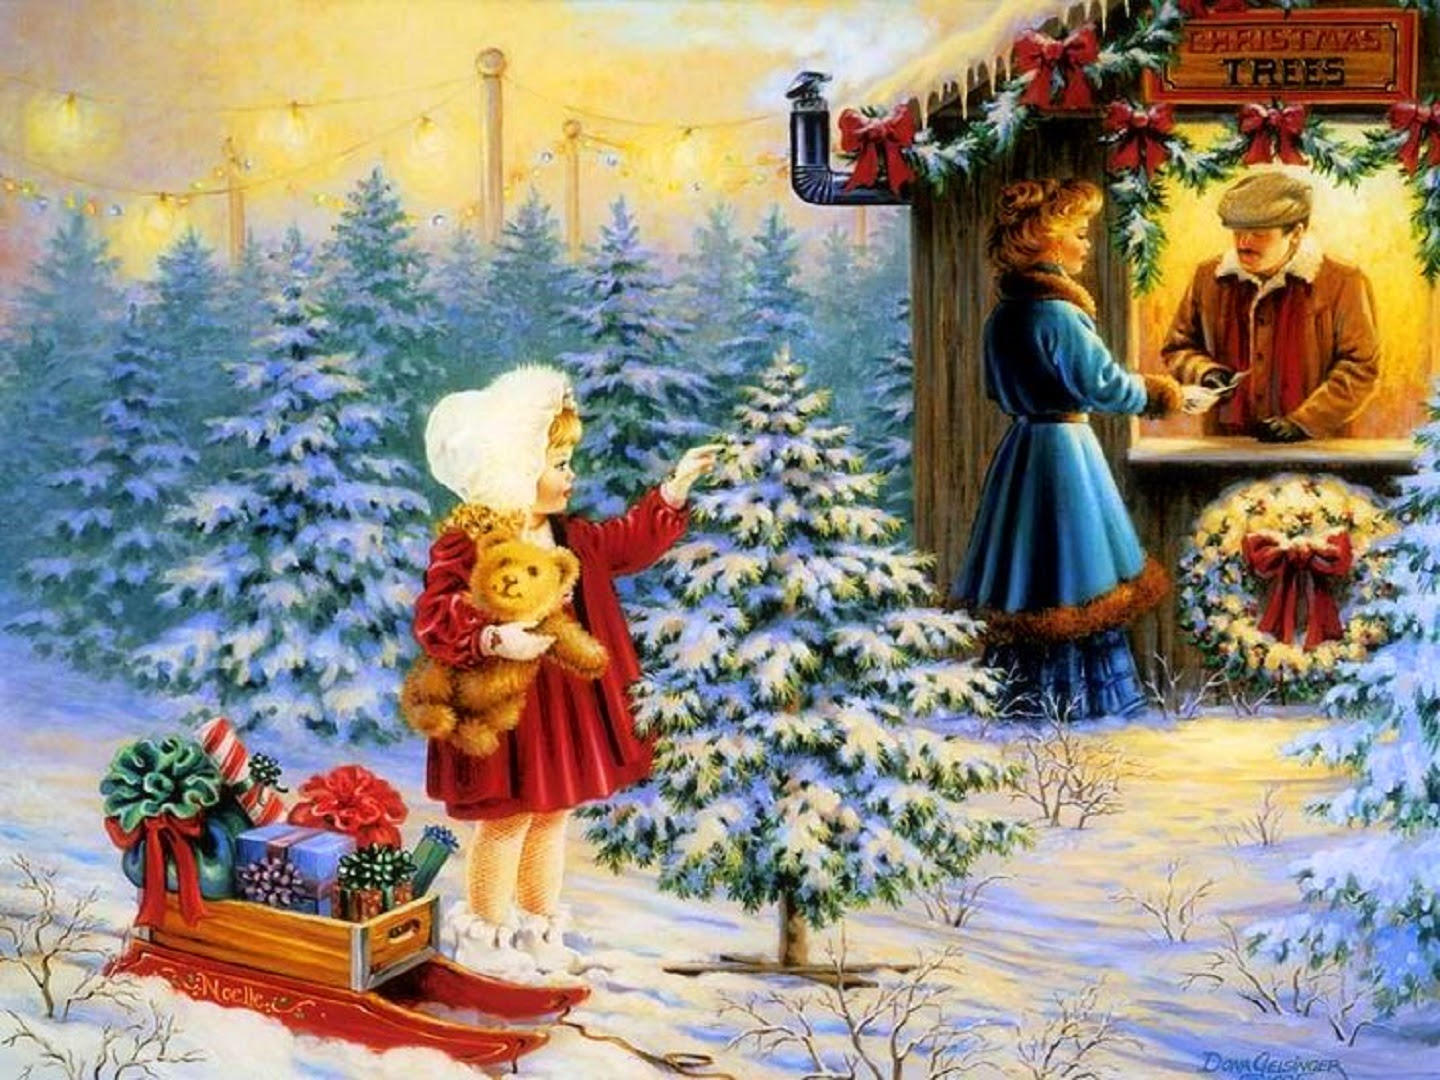 mother-with-her-daughter-buying-Christmas-tree-in-country-side-village-shop-images-drawings-1440x1080.jpg